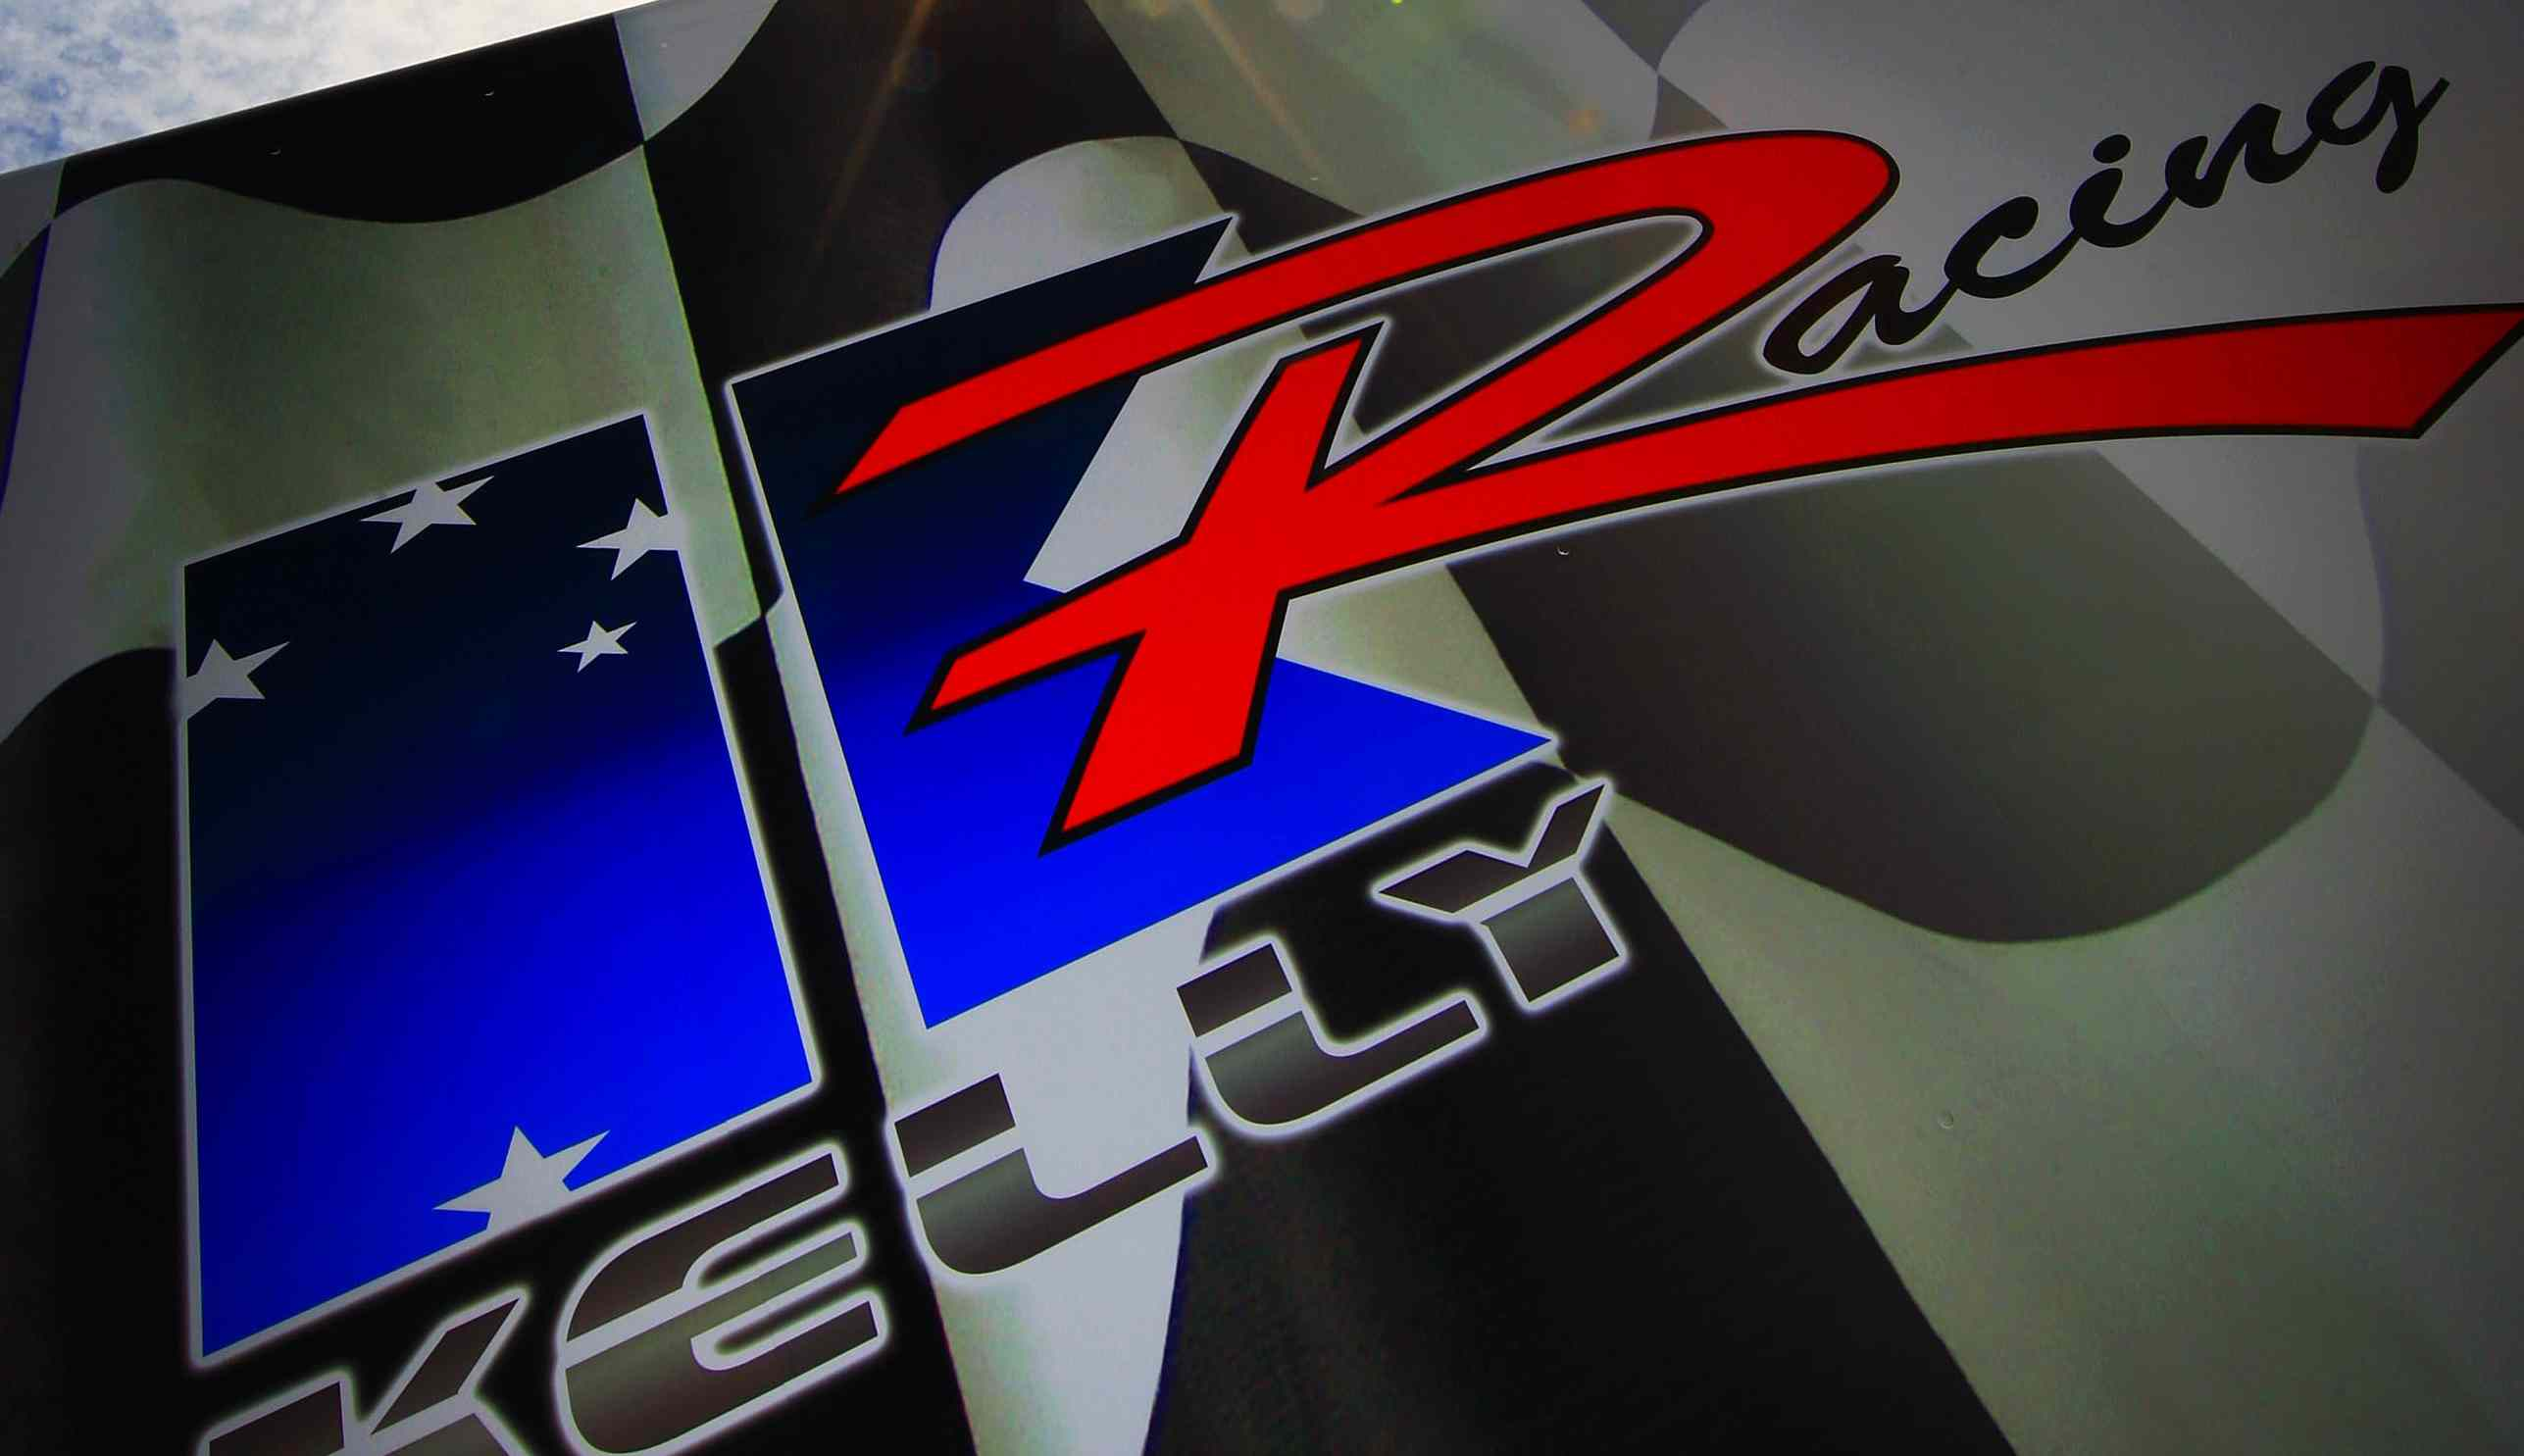 Major announcement: Big Kelly Racing news